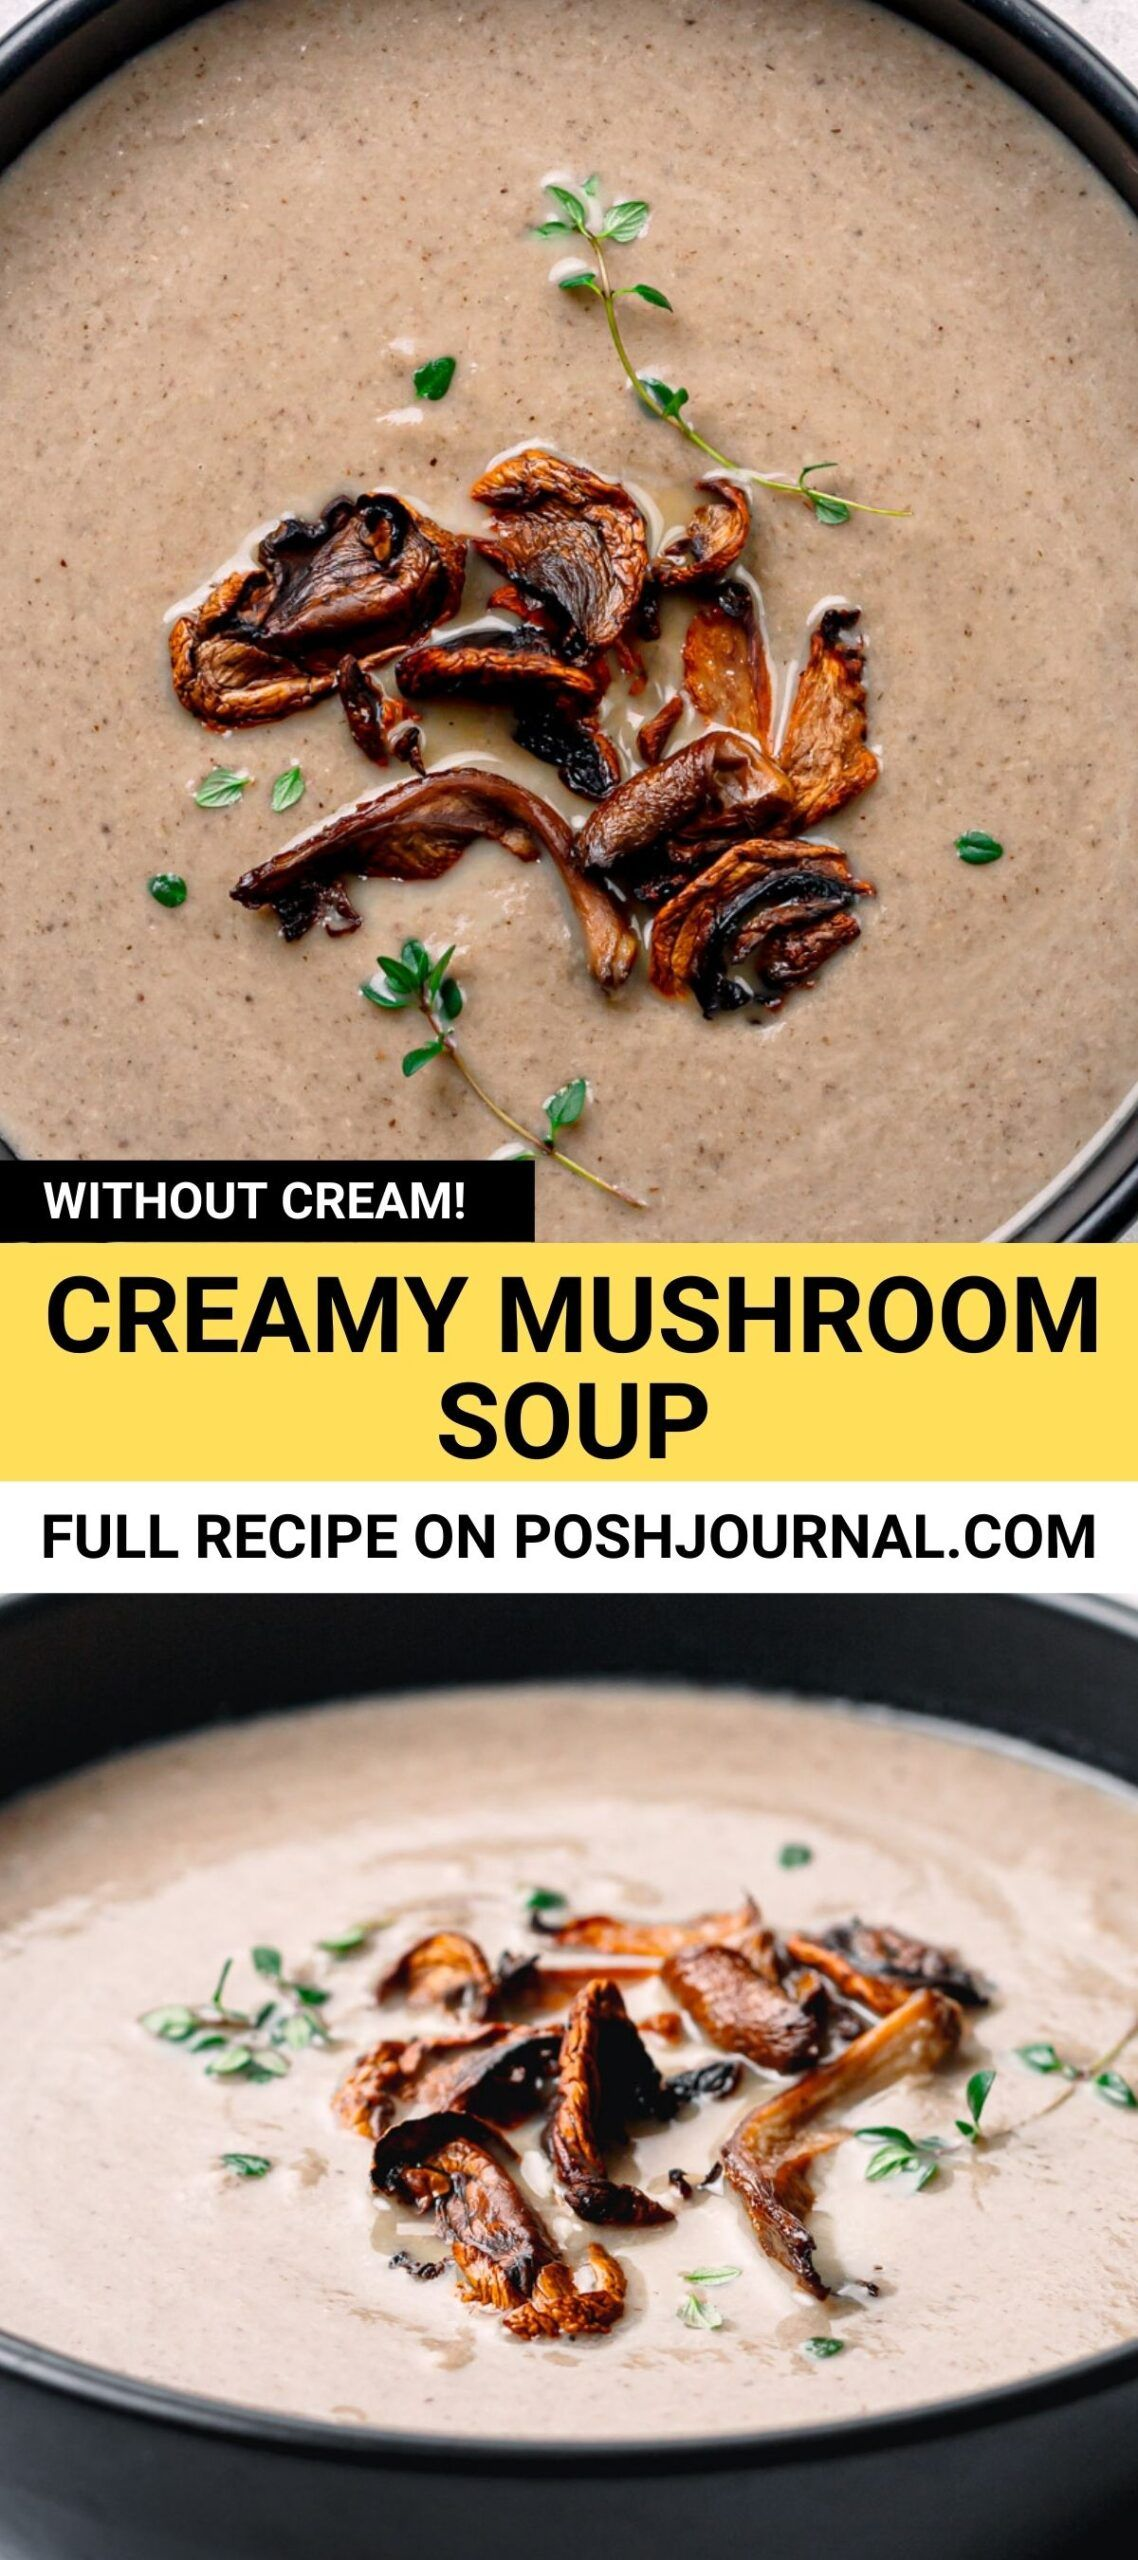 So Creamy With No Cream Delicious Ultra Creamy Mushroom Soup Recipe Made Without Flour Heavy Cream In 2020 Creamy Mushroom Soup Mushroom Soup Recipes Soup Recipes